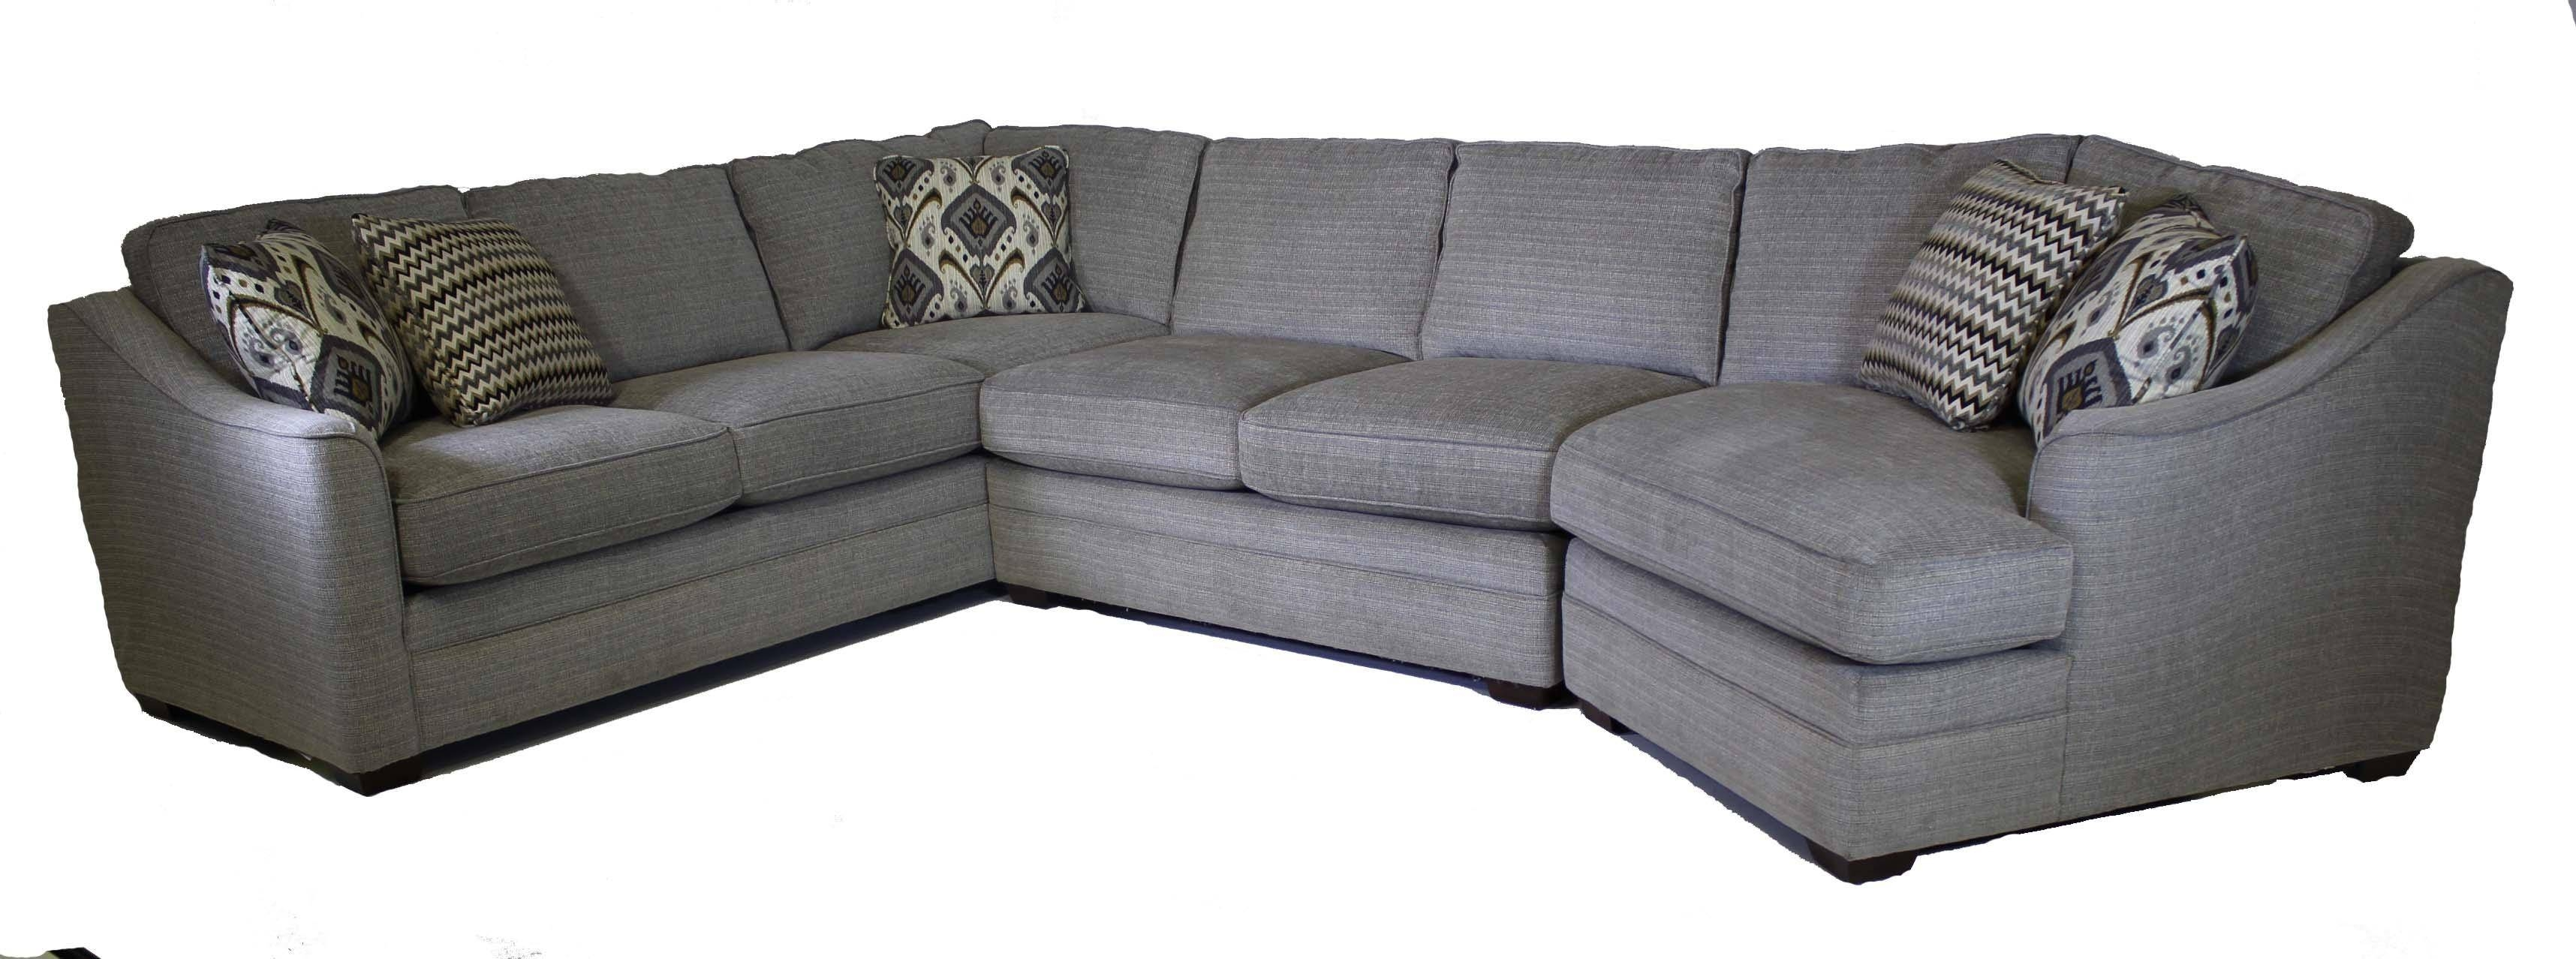 Craftmaster F9 Custom Collection Customizable 3-Piece Sectional throughout Craftmaster Sectional Sofa (Image 9 of 30)